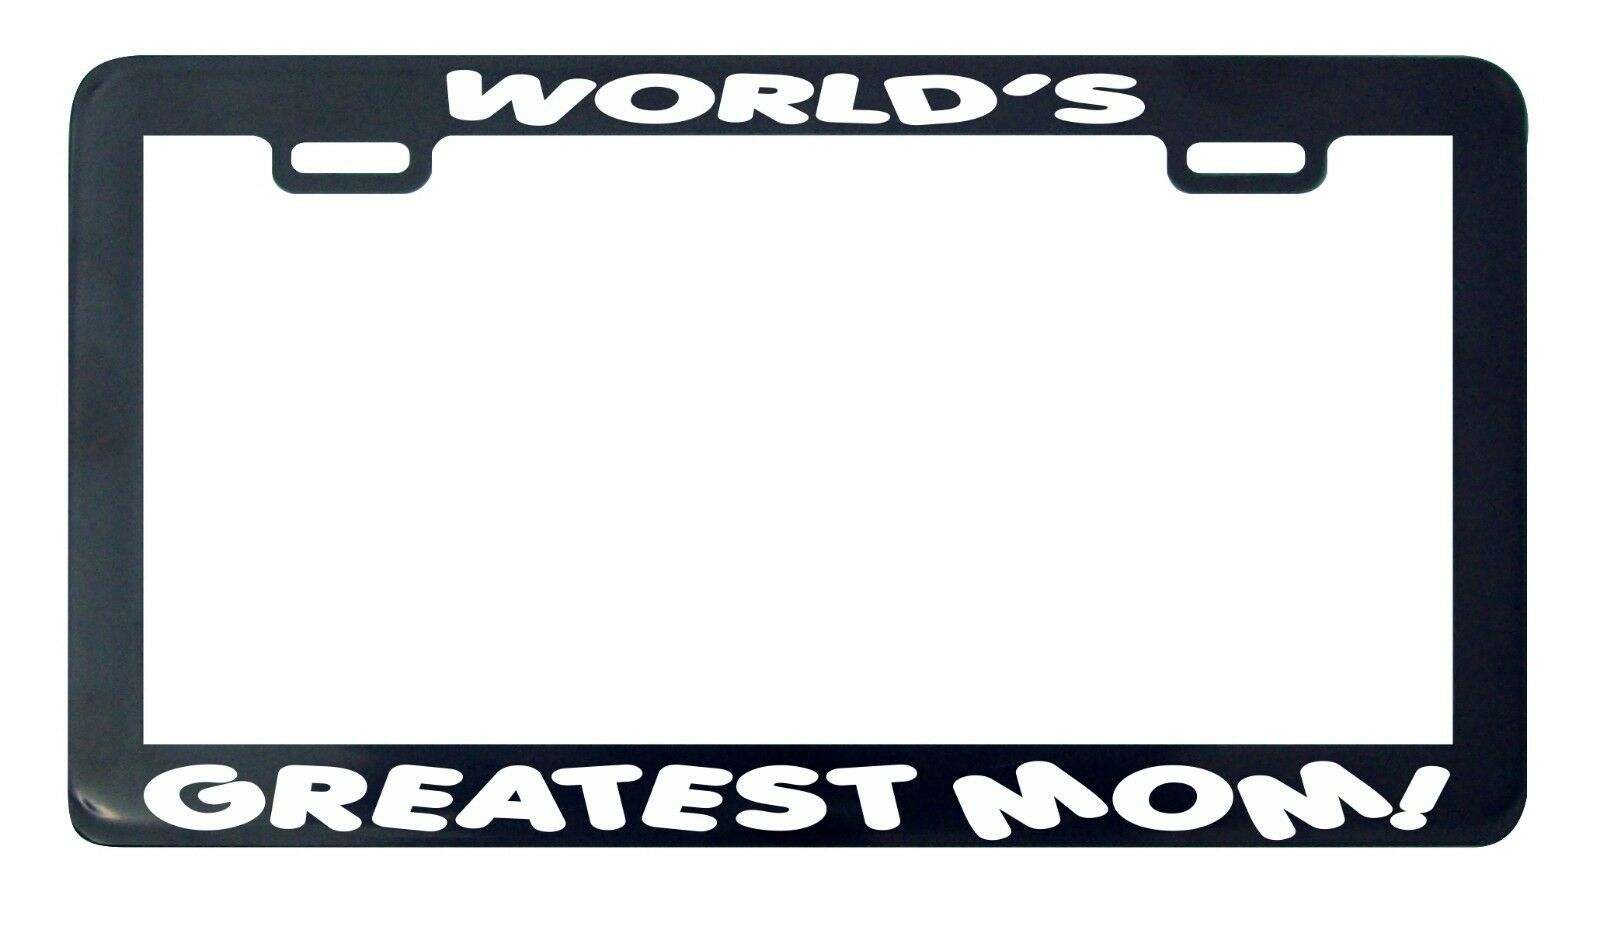 Primary image for World's Greatest Mom license plate frame holder tag